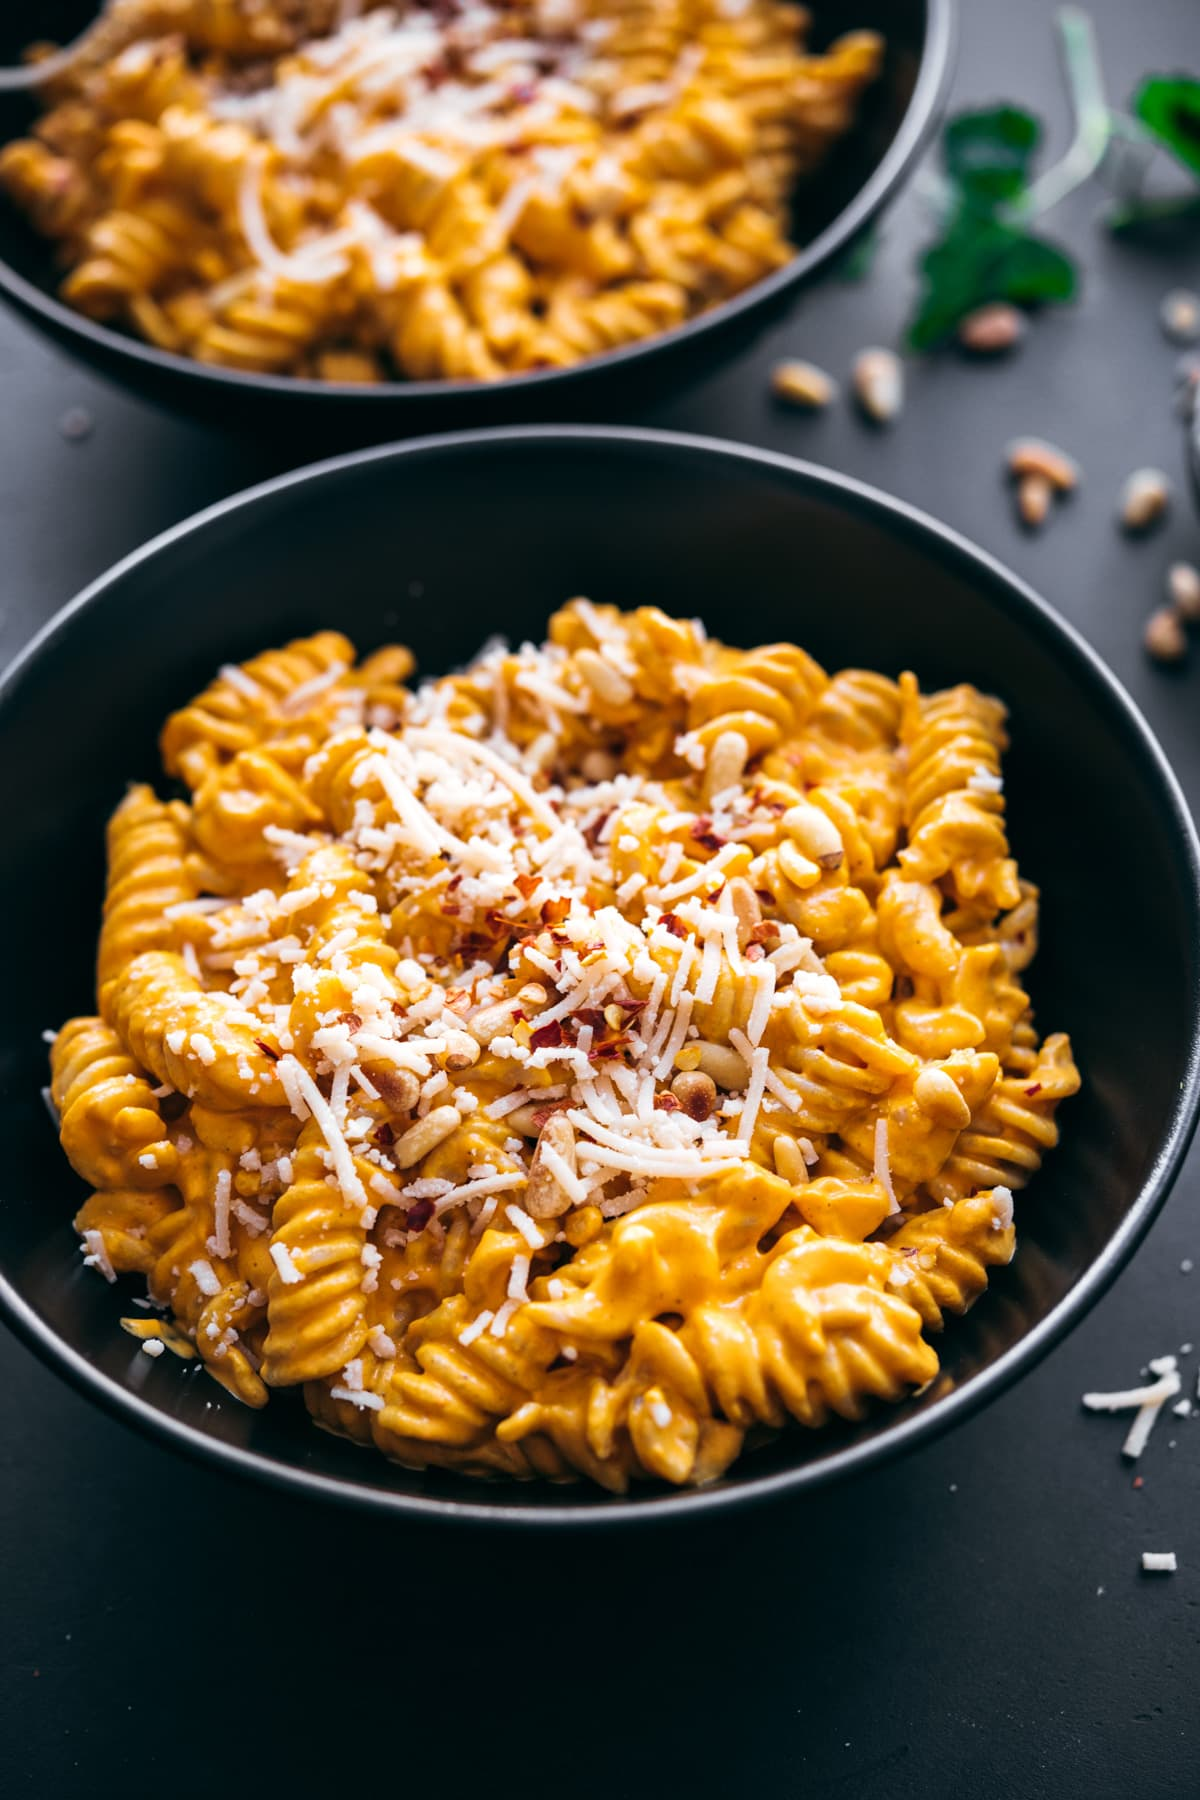 close up view of creamy vegan roasted red pepper pasta in black bowls topped with parmesan, pine nuts and red pepper flakes.